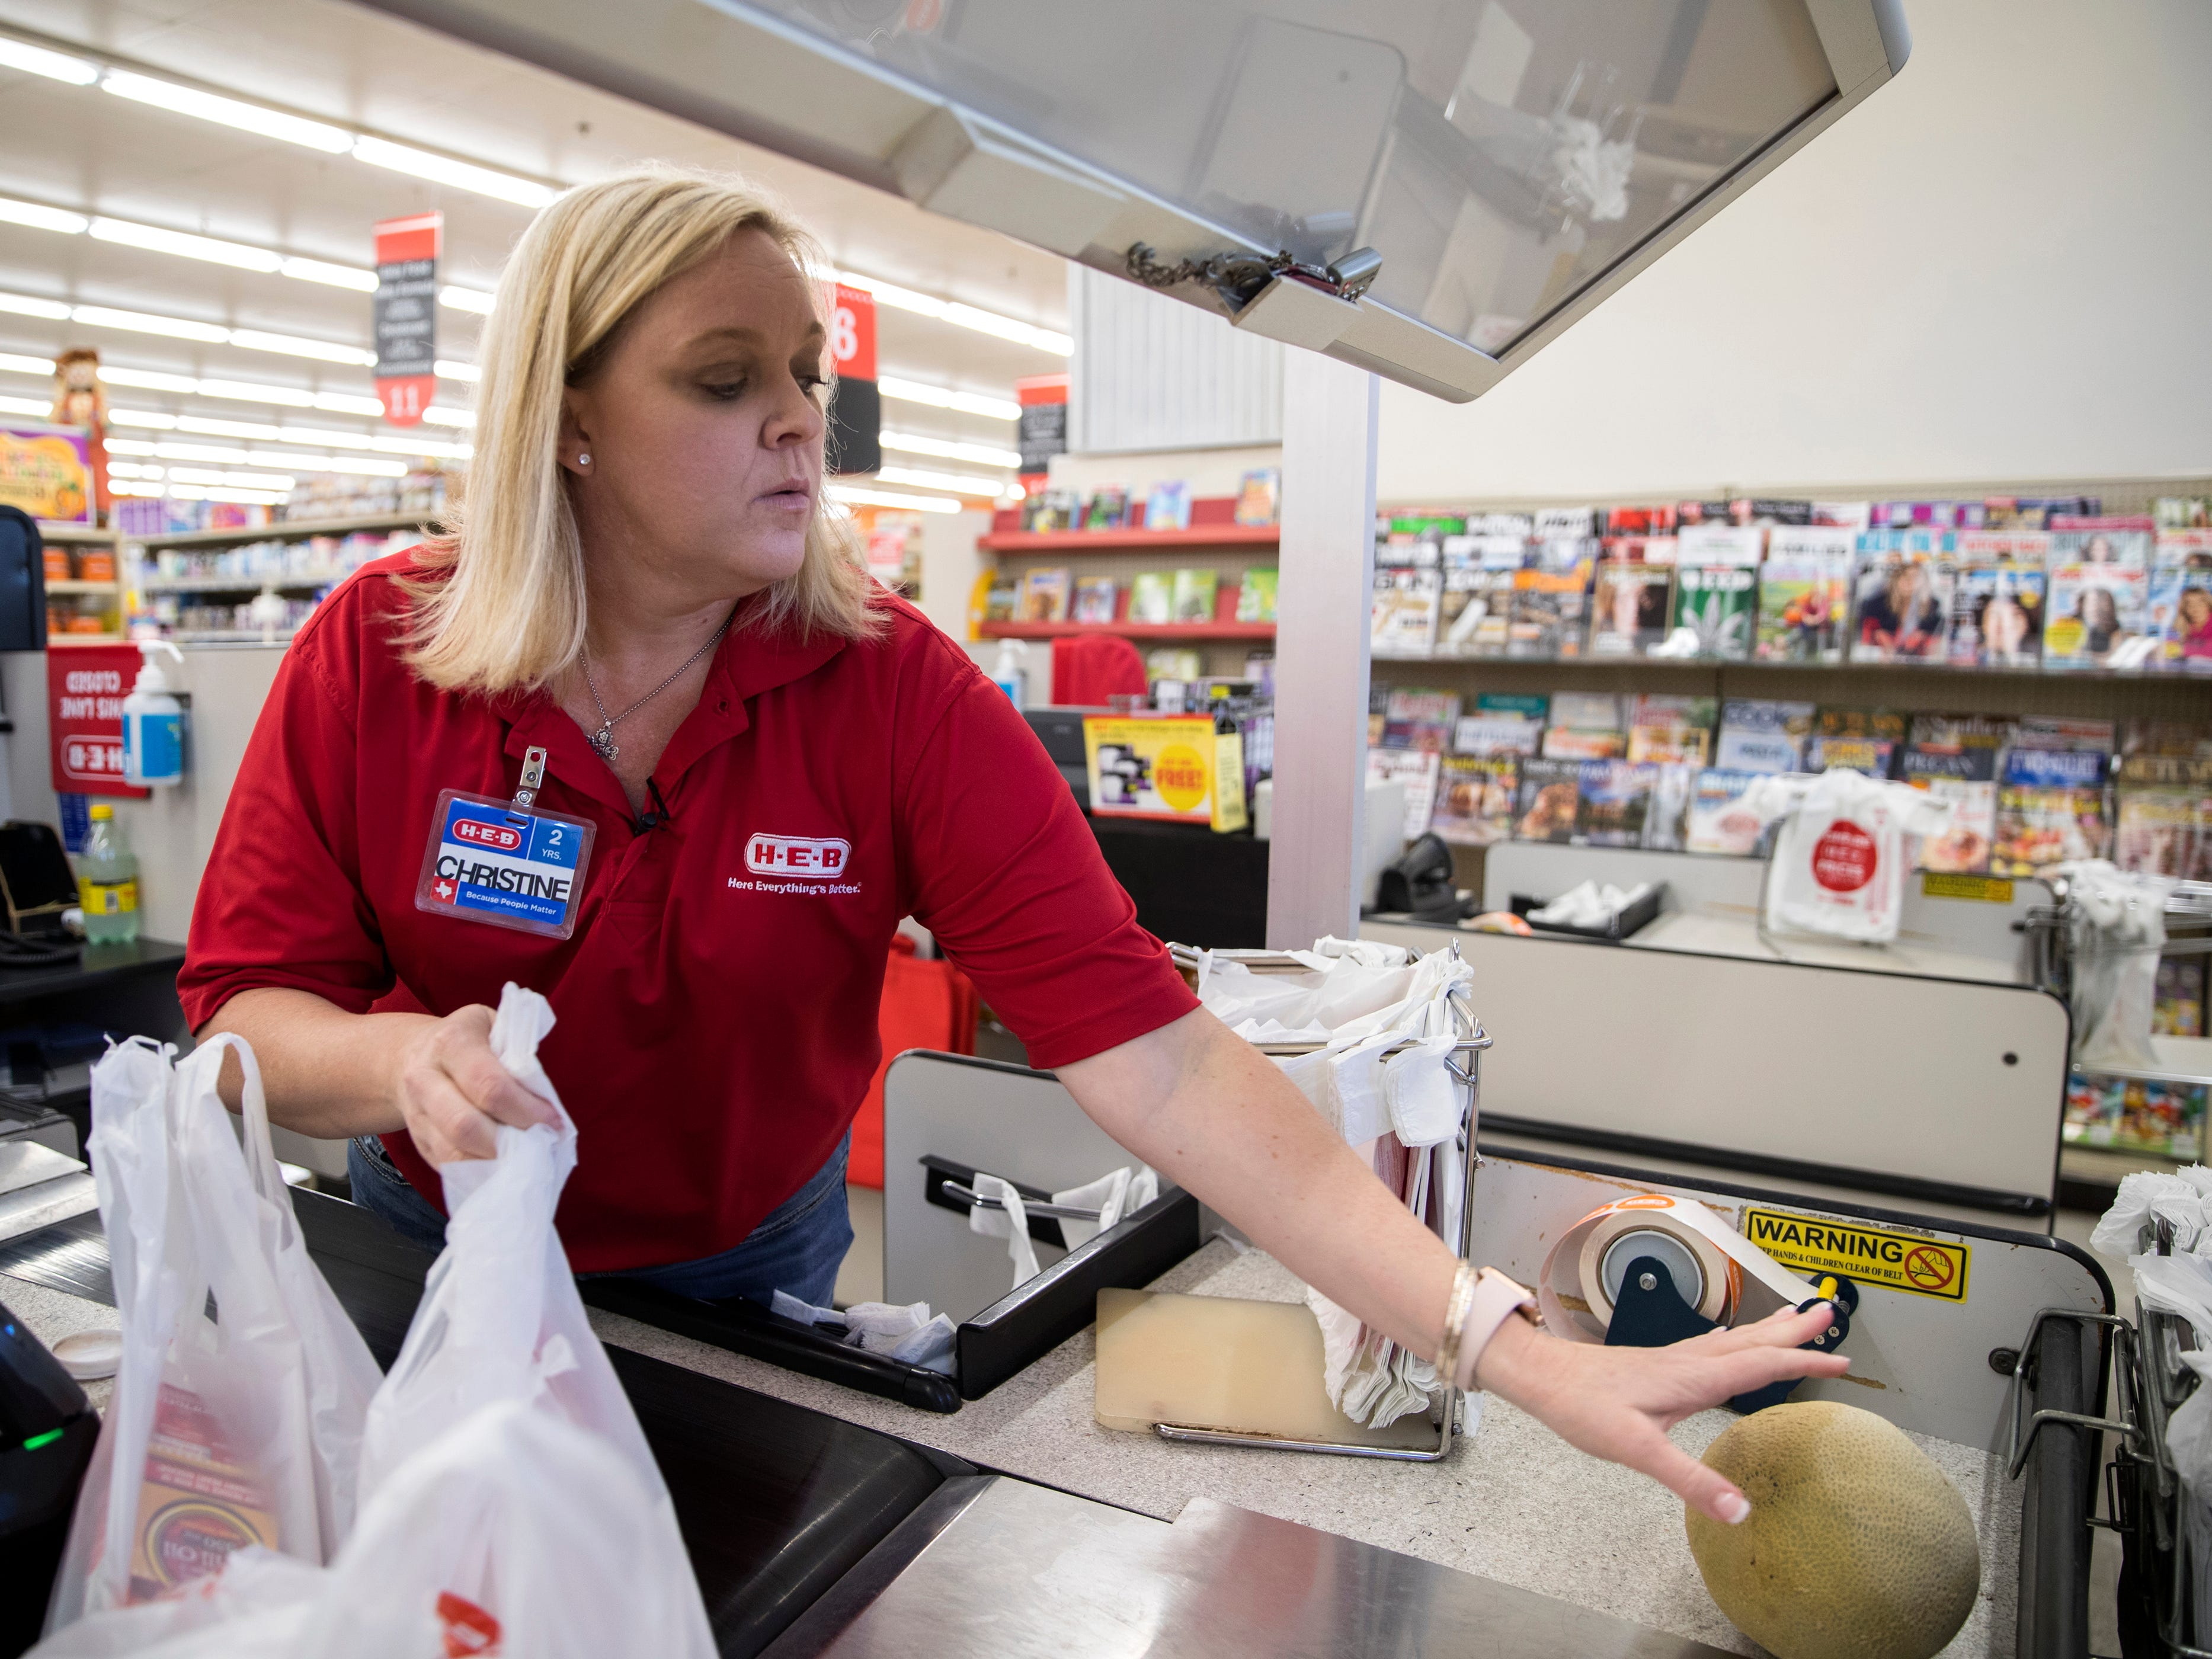 "Christine Kidd McFarland, a fifth-grade teacher at Sinton Elementary School in Sinton, Texas, rubs her neck as she waits for a customer to check out at H-E-B, a grocery store, on Monday, September 17, 2018. ""Almost every single teacher that I know has some kind of a side gig,"" she said. ""They either sell some kind of product out of their home, or babysit on the side, keep kids after school, or work on the weekends. If it's a single teacher, they just cannot make it on the income that we're afforded."""